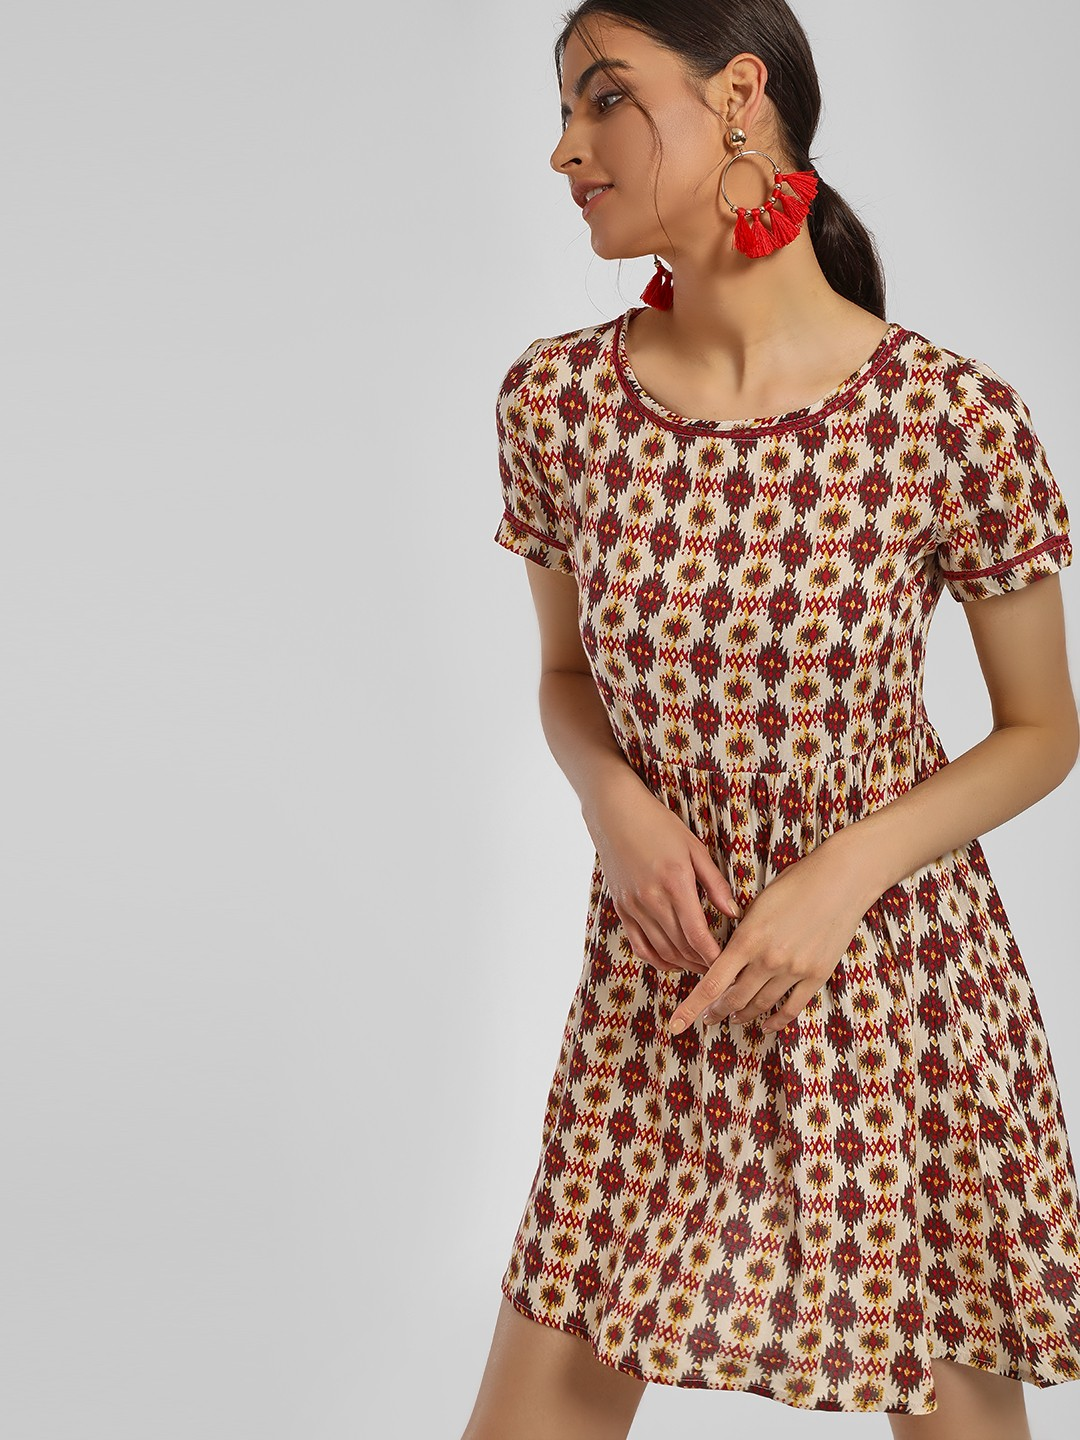 MIWAY Multi Printed Lace Insert Skater Dress 1